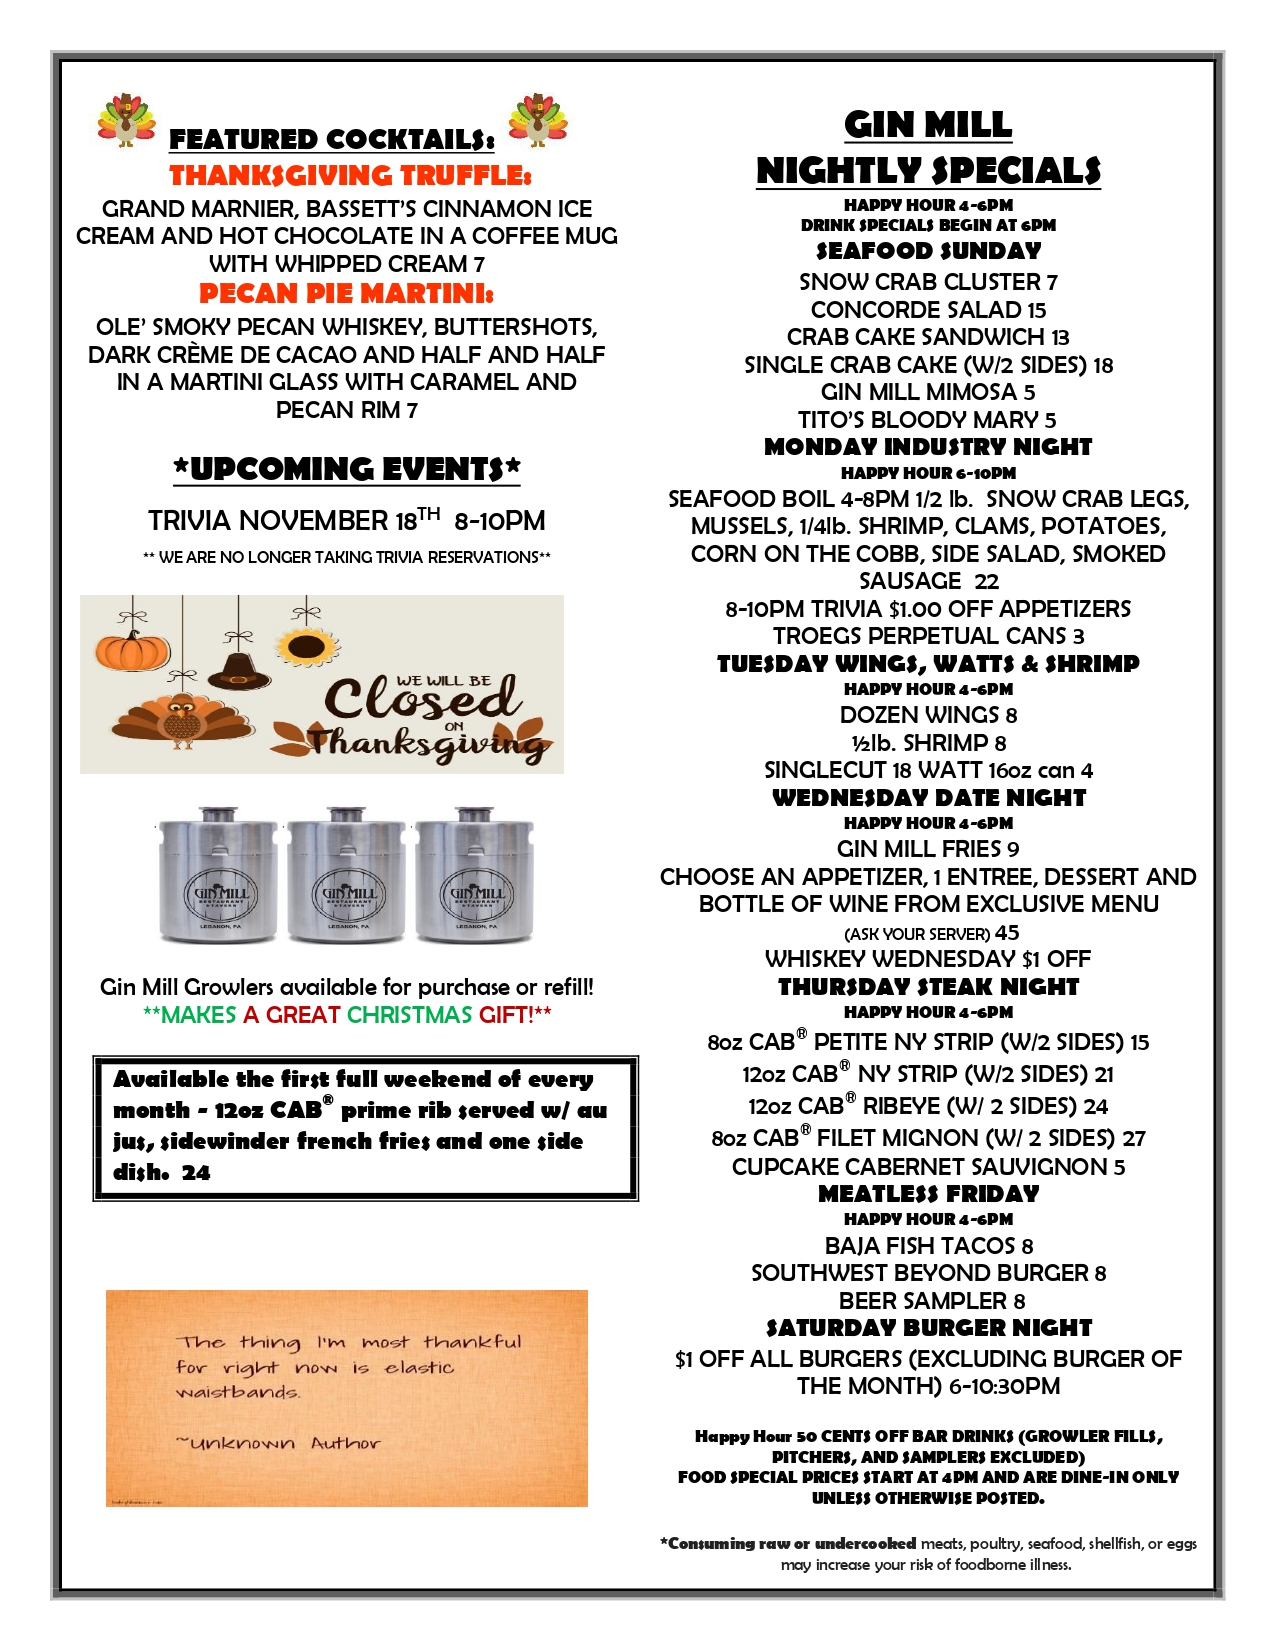 Gin Mill Weekly Specials Nov 18th - Nov 24th (readable PDF version linked above)